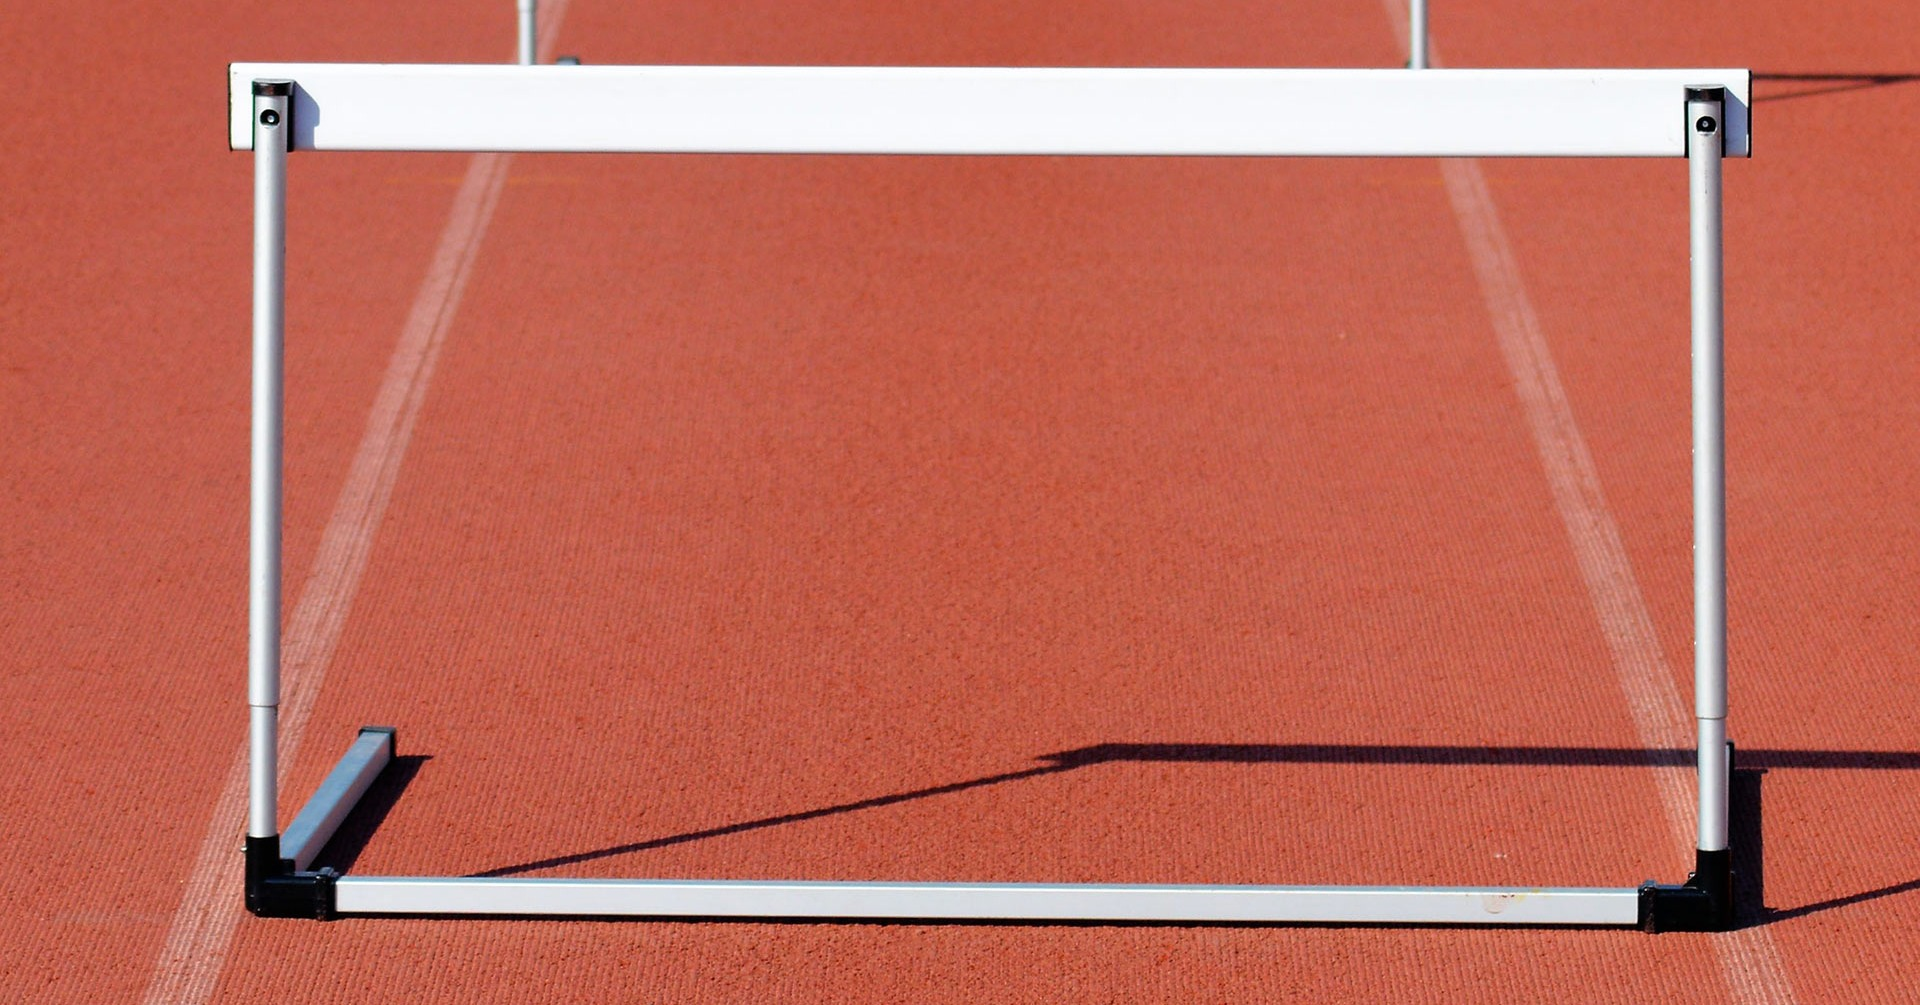 Jump the learning curve hurdle by letting your vendor do your training for you